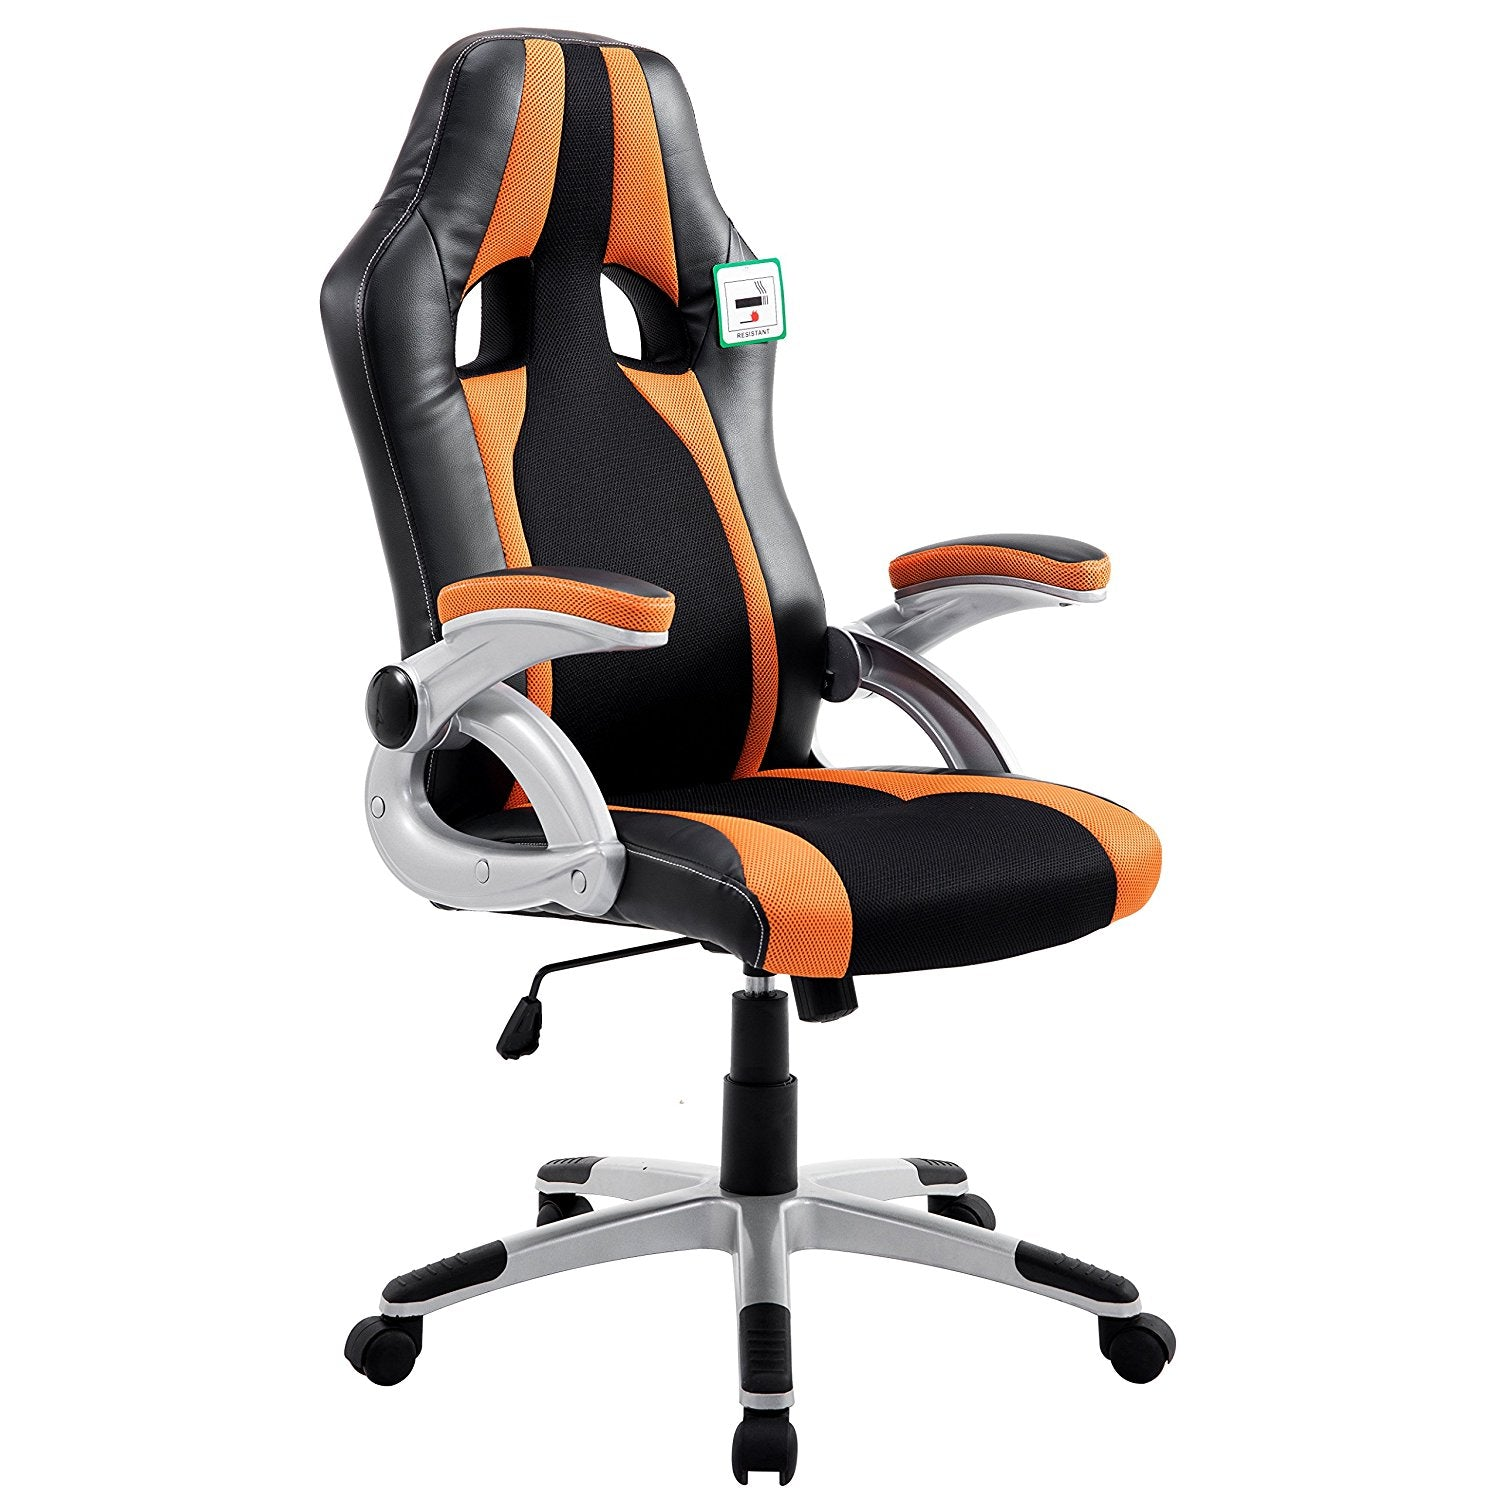 ctf high back pu leather fabric racing gaming swivel chair with adjustable armrests orange